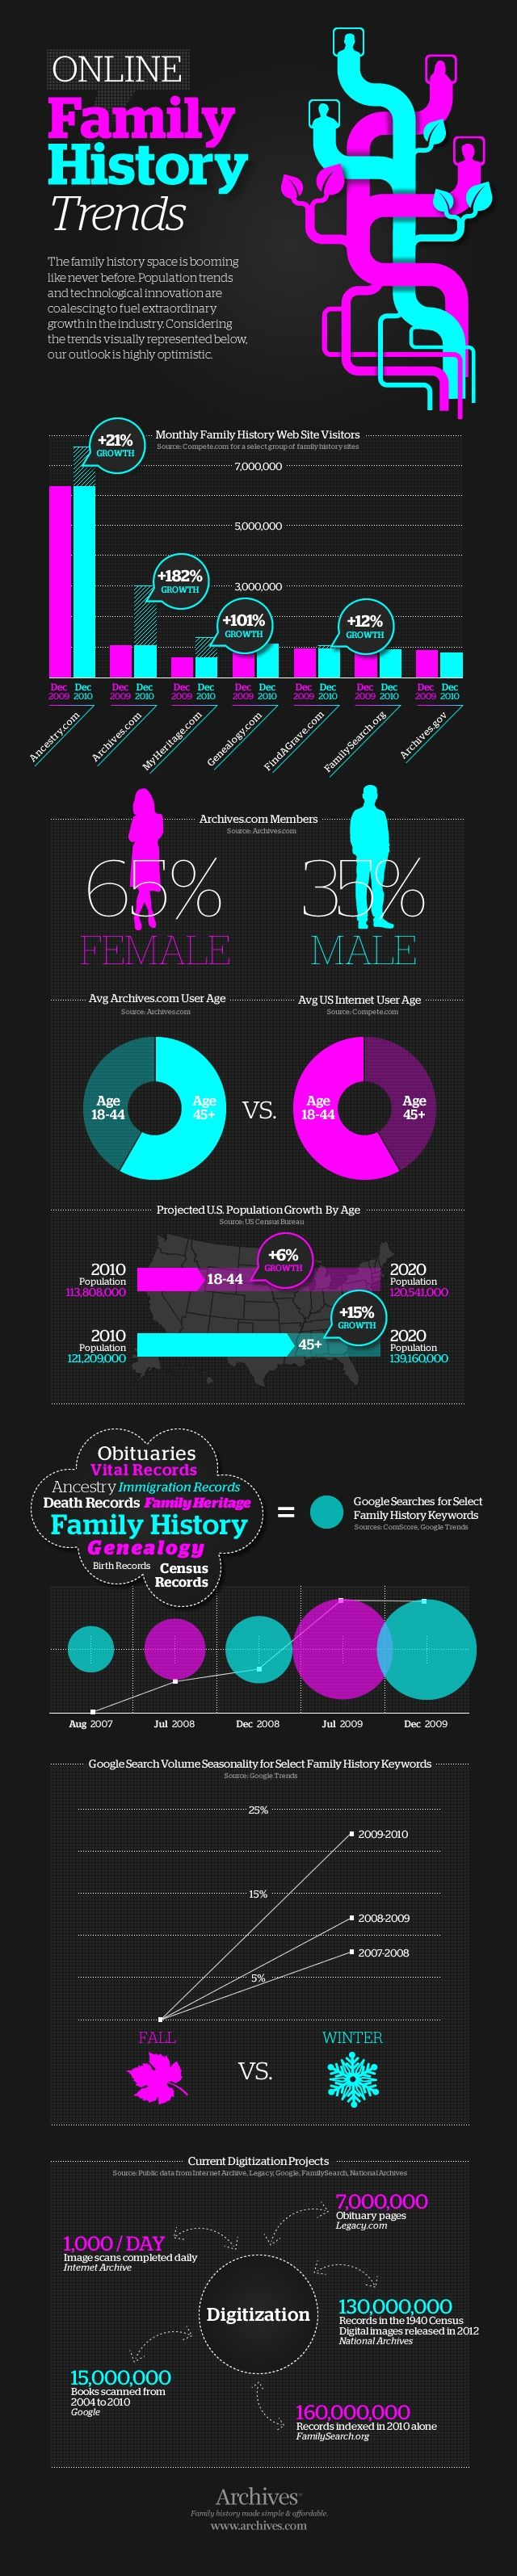 Family History Trends